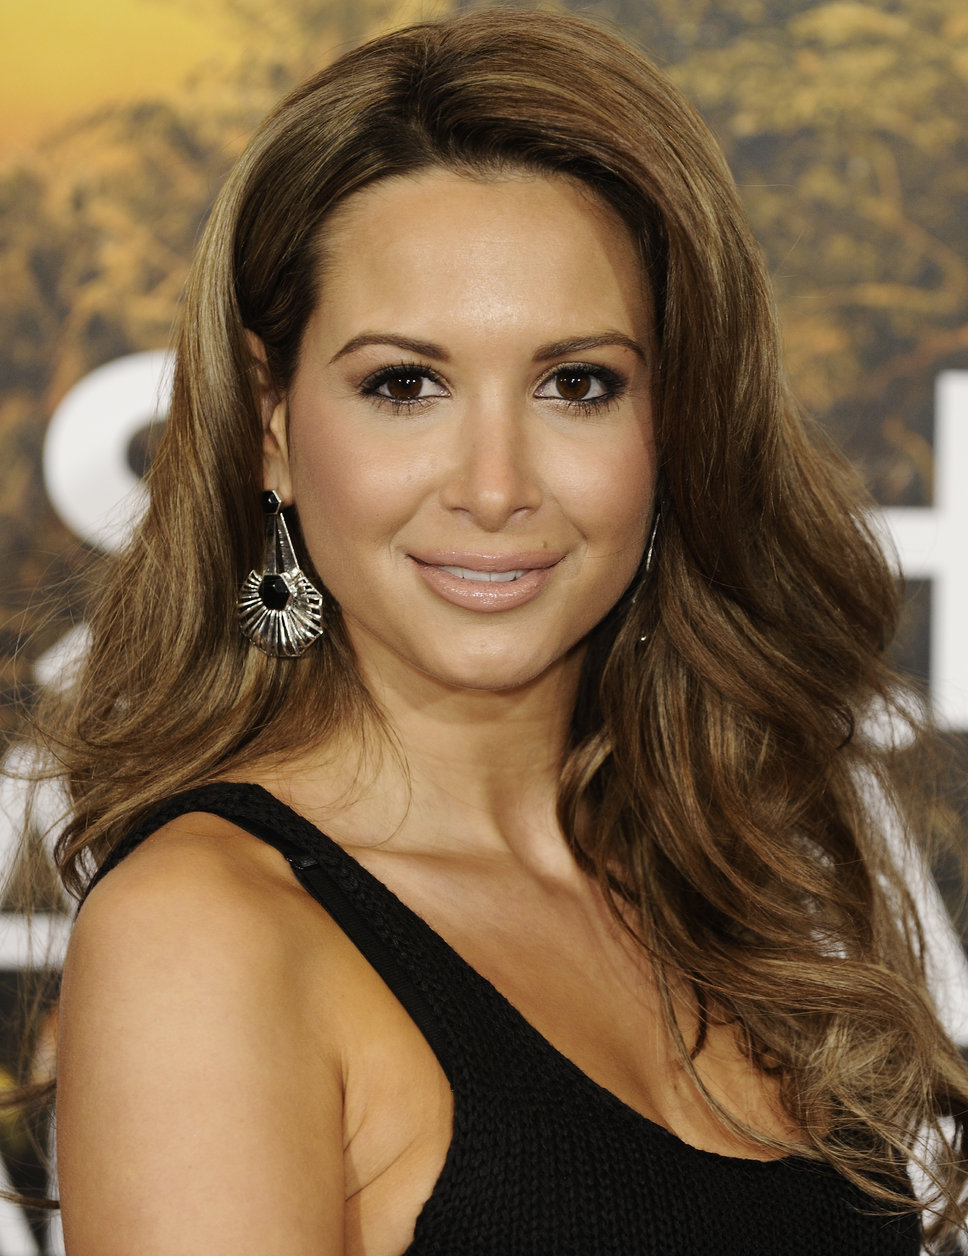 mandy capristo photo gallery page 3 celebs. Black Bedroom Furniture Sets. Home Design Ideas